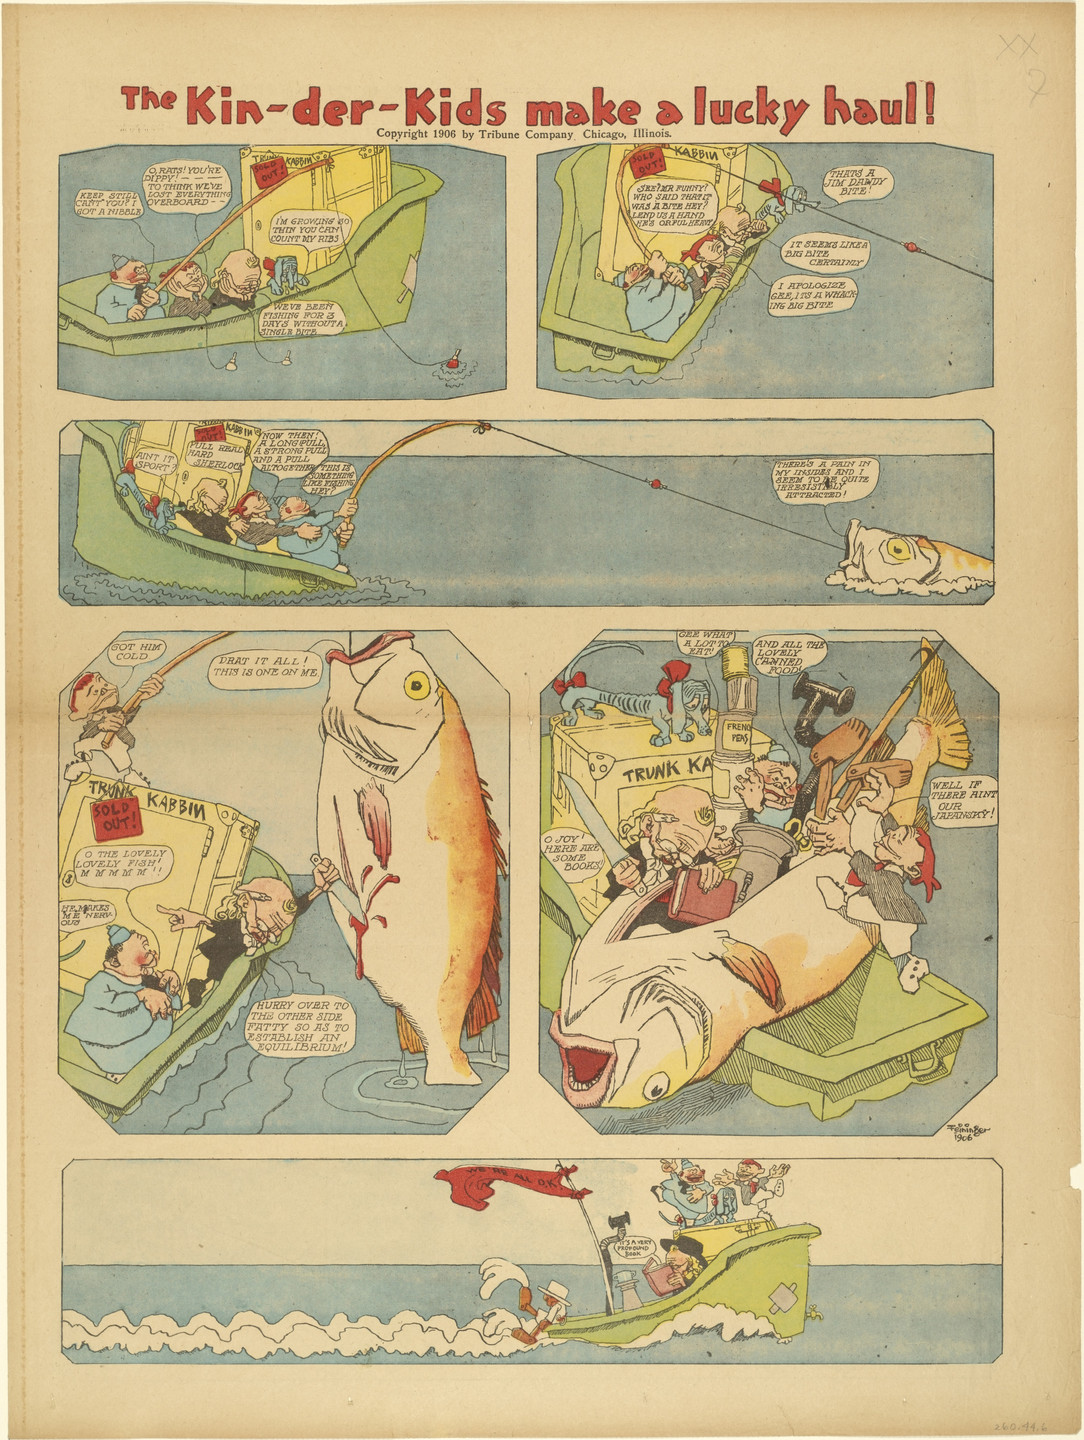 Lyonel Feininger. The Kin-der-Kids Make a Lucky Haul! from The Chicago Sunday Tribune. (June 10) 1906